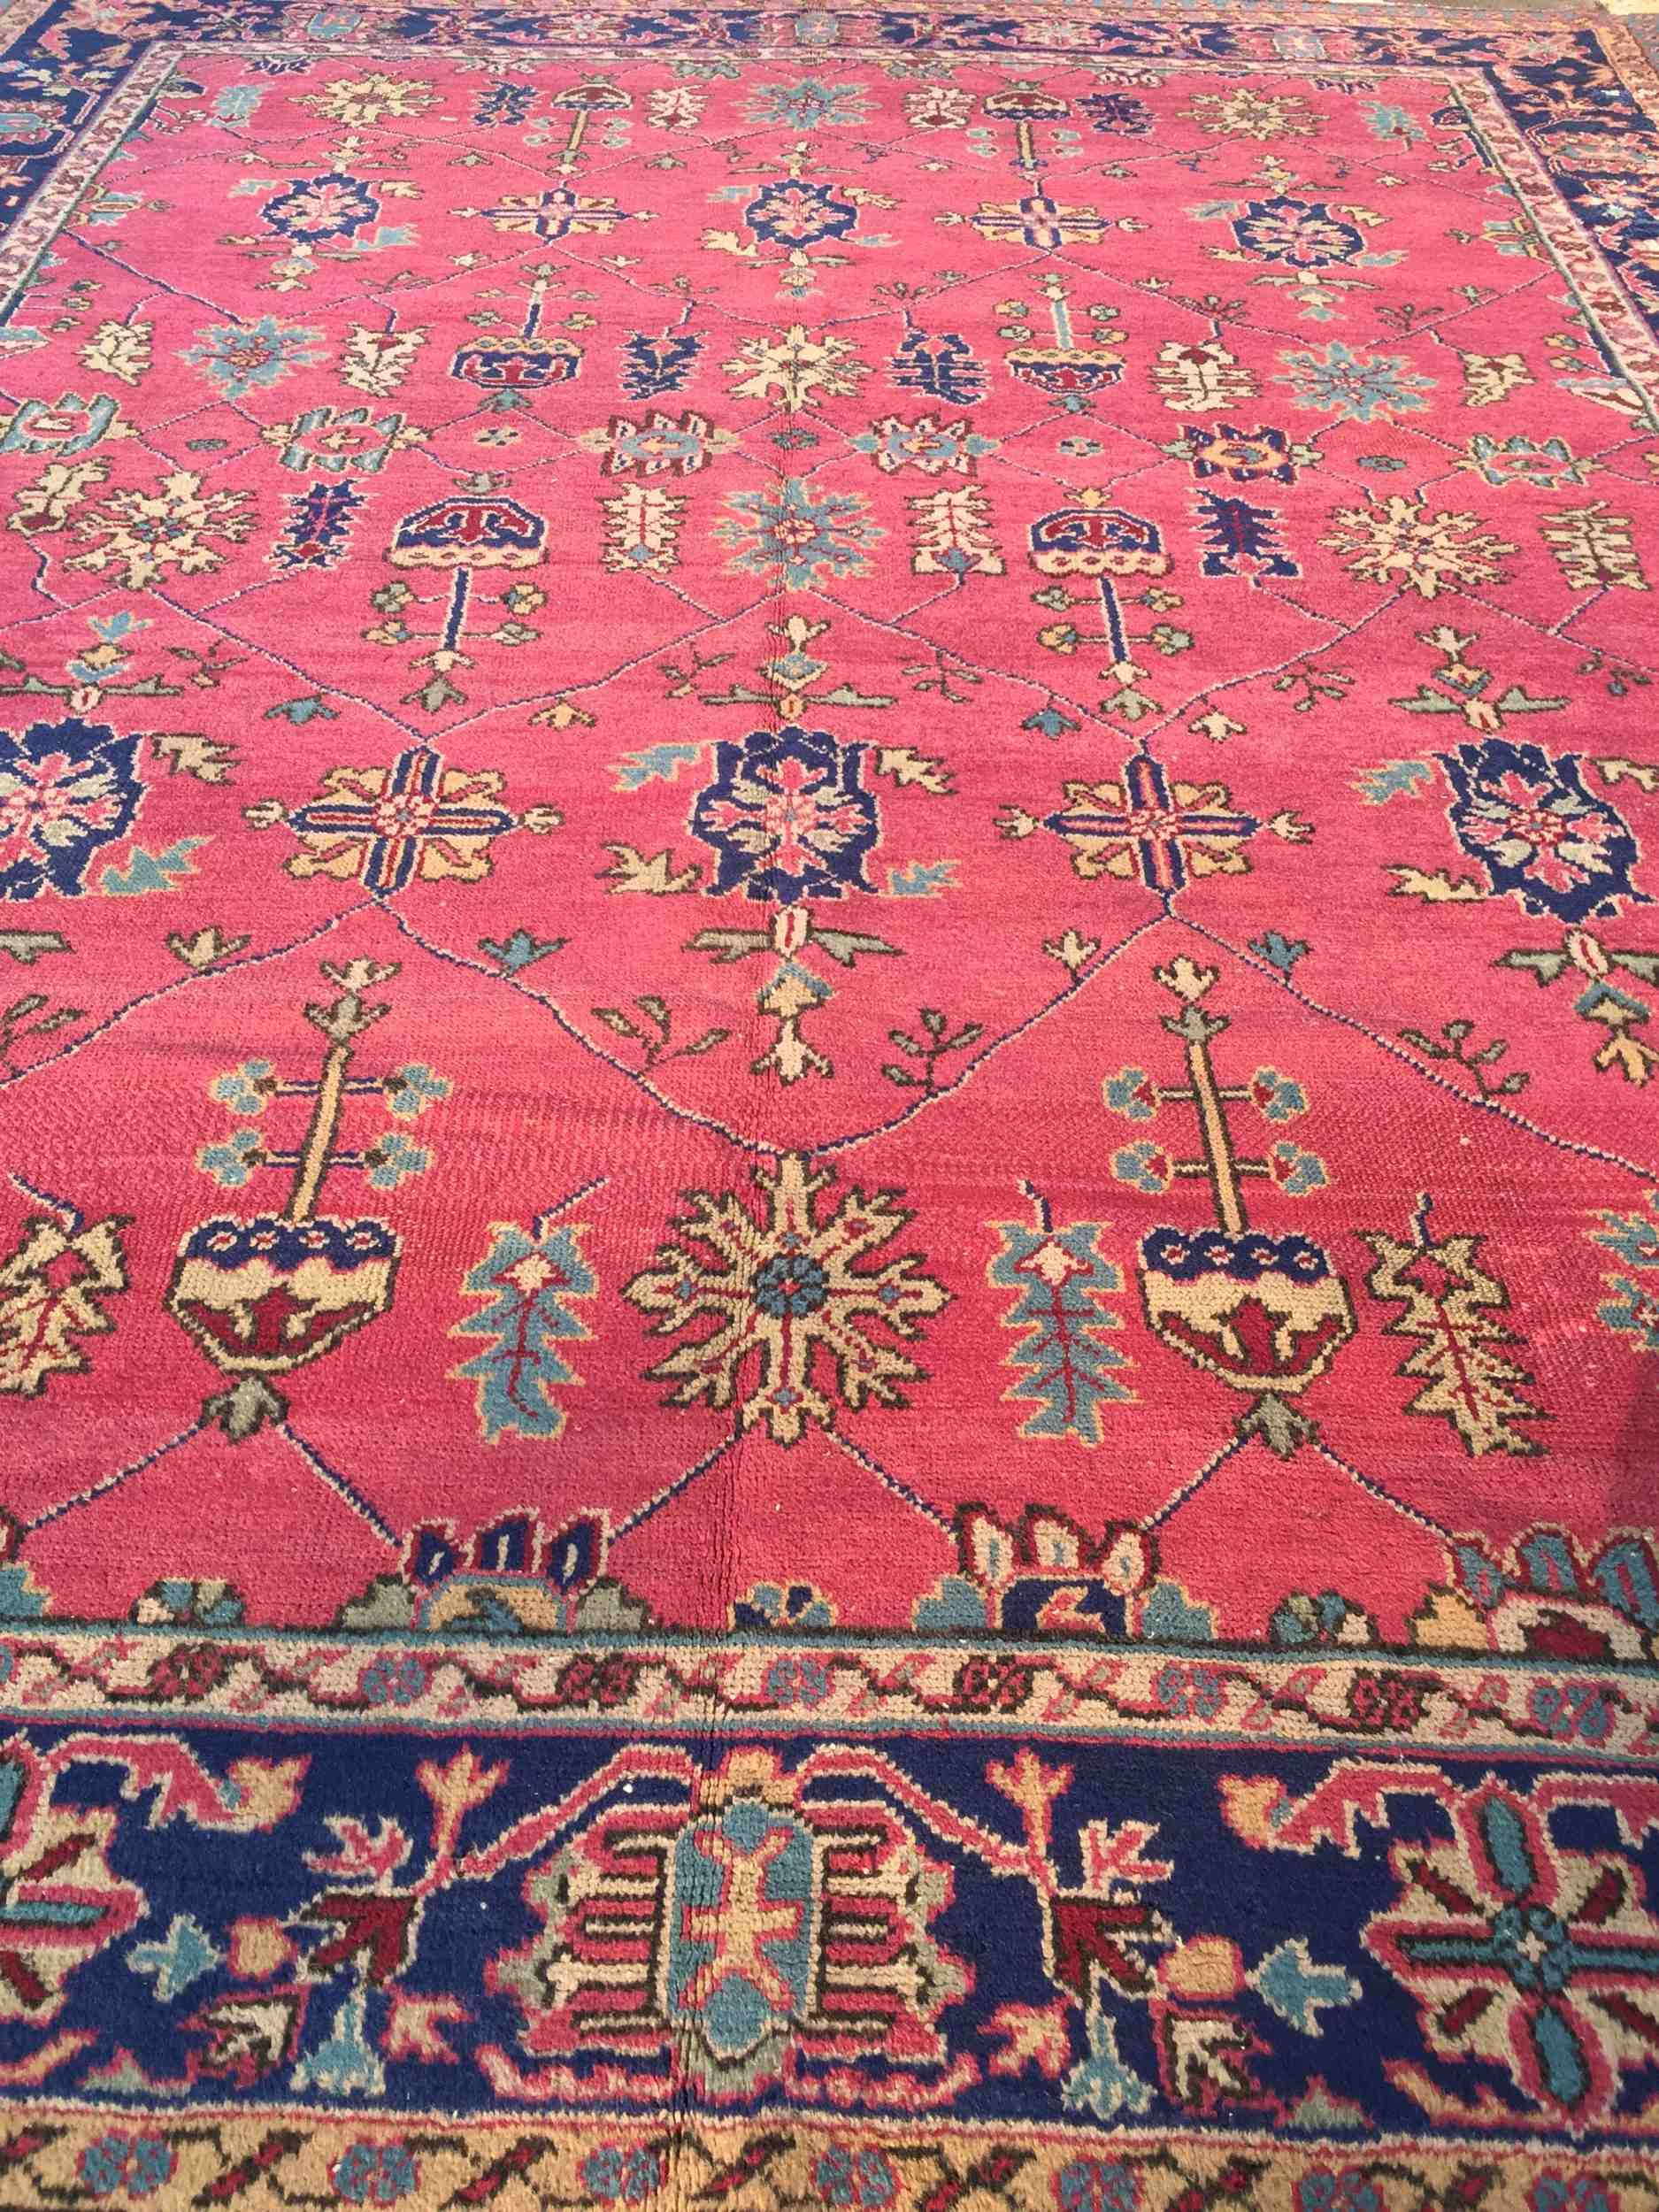 Vintage Turkish Rug 10x12 Oushak Isparta Rug Rugs Vintage Turkish Rugs Turkish Rug